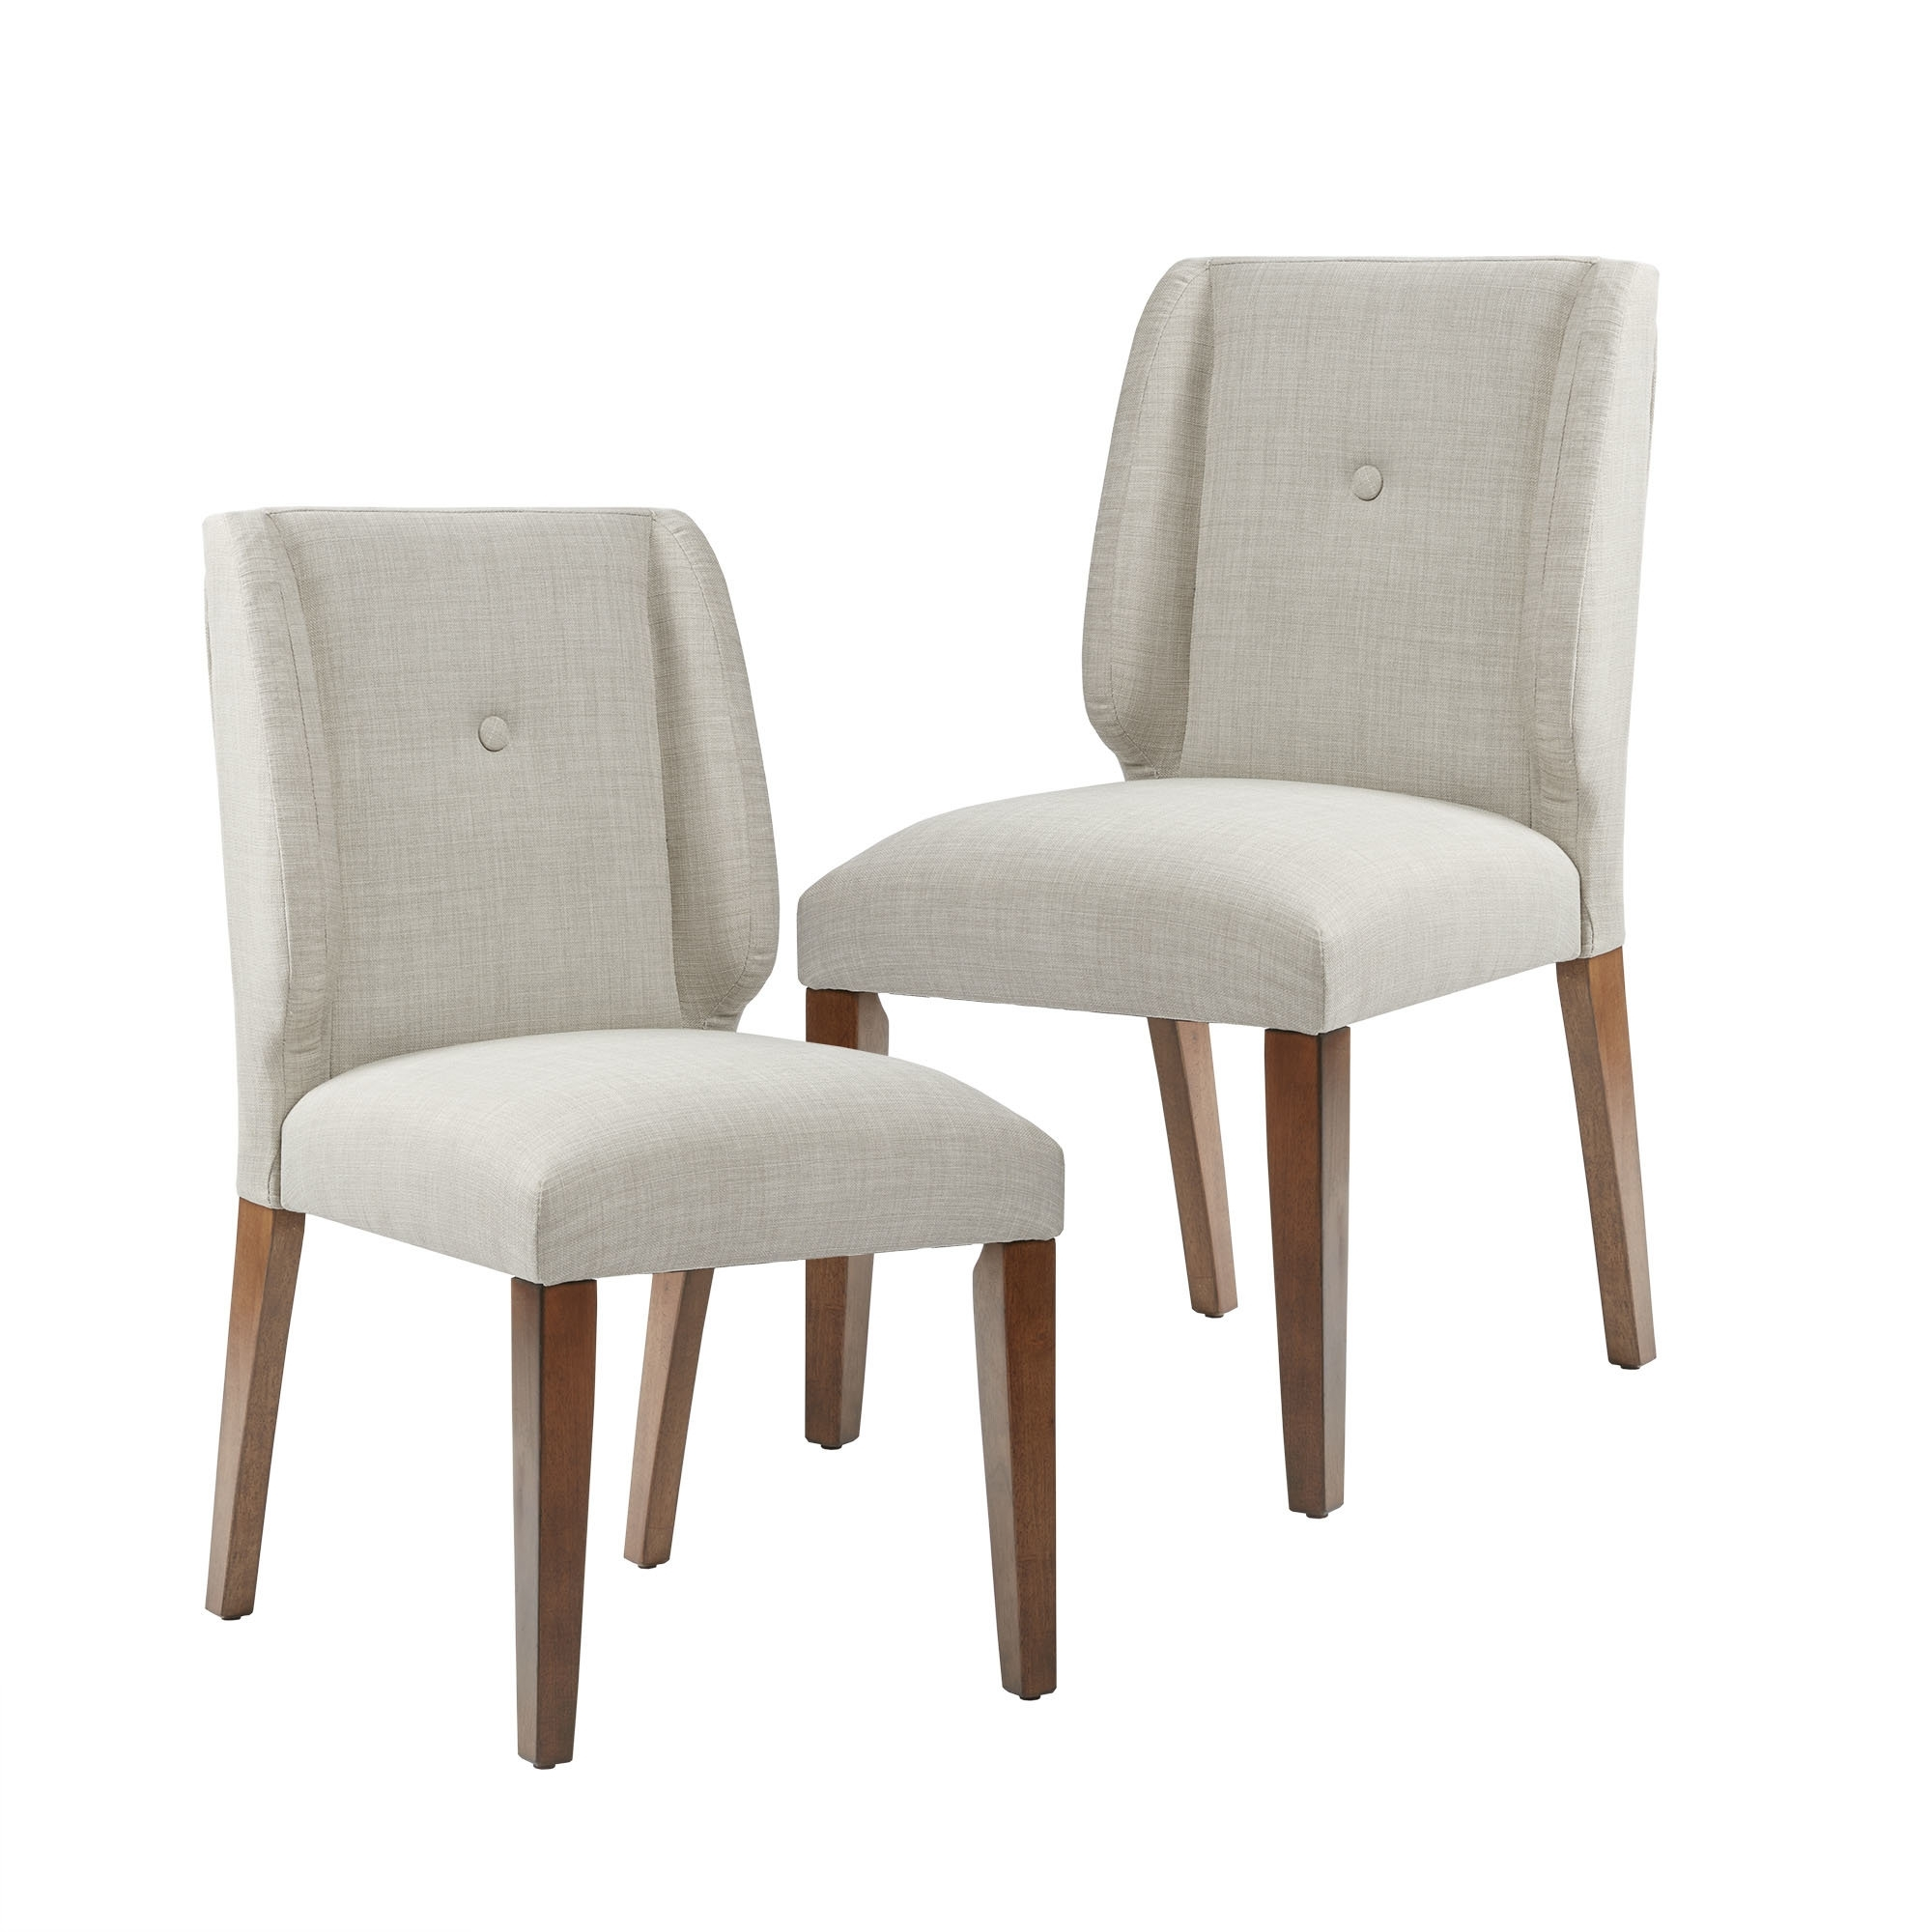 Wayfair Within Recent Candice Ii Upholstered Side Chairs (View 20 of 20)